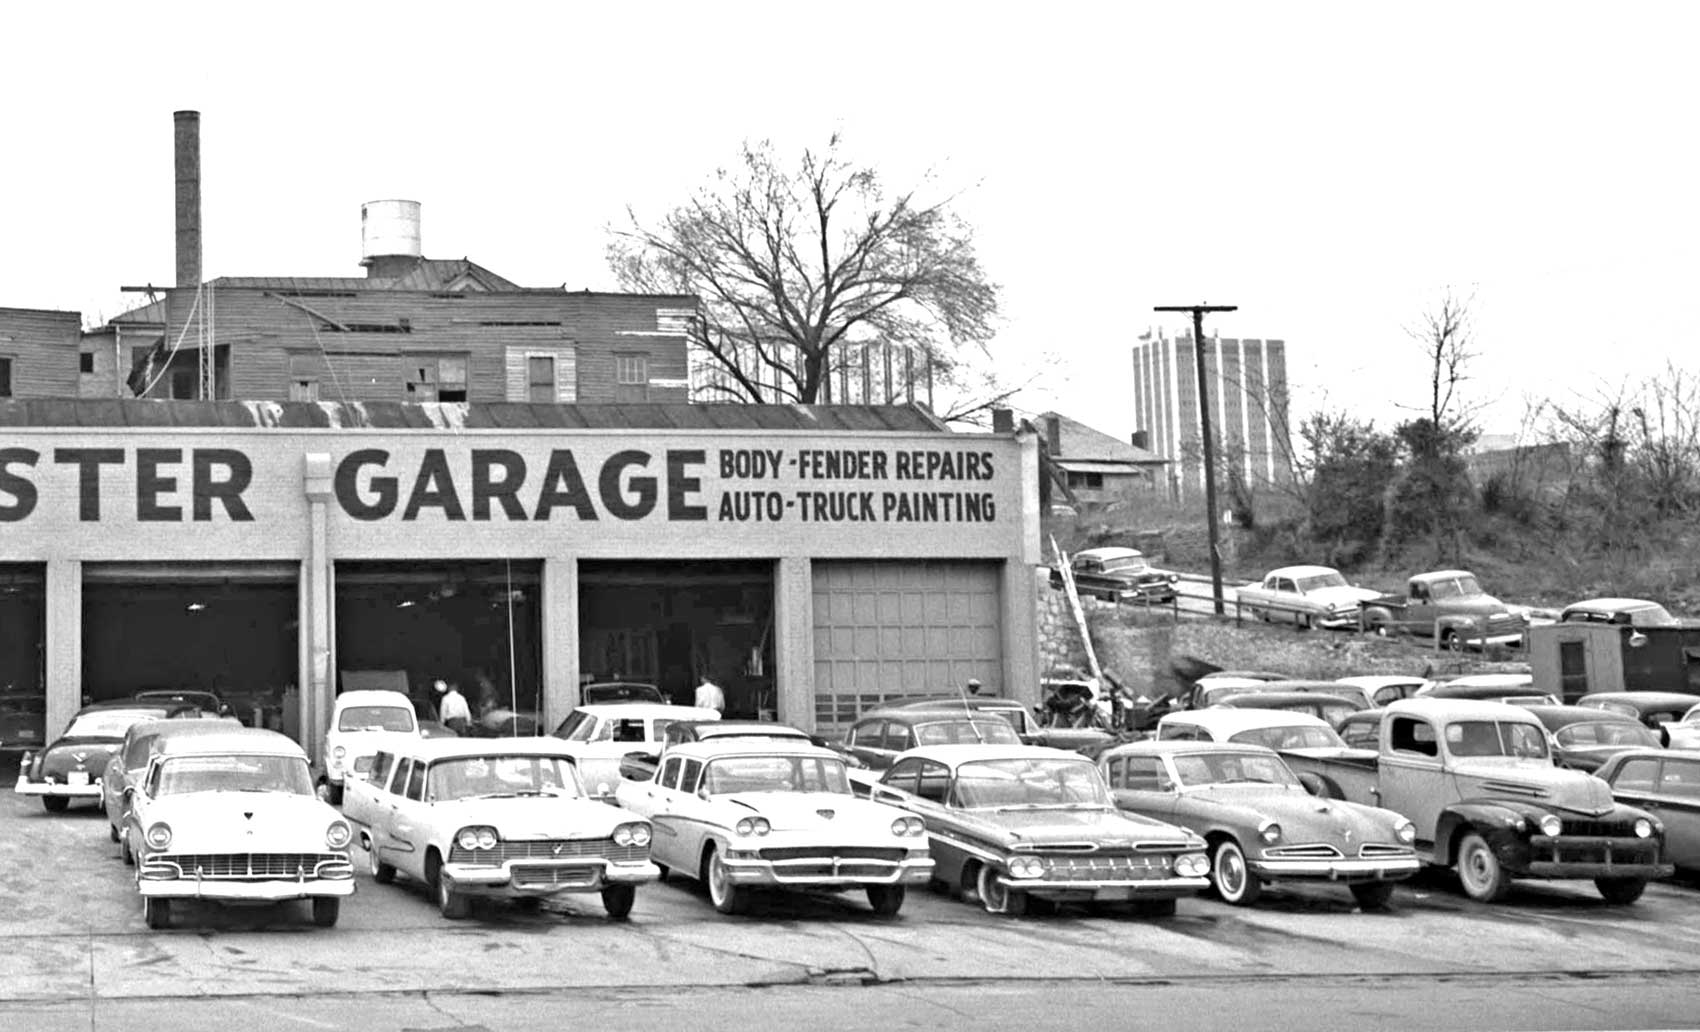 automotive americana webster garage general repairs and body work the old motor. Black Bedroom Furniture Sets. Home Design Ideas